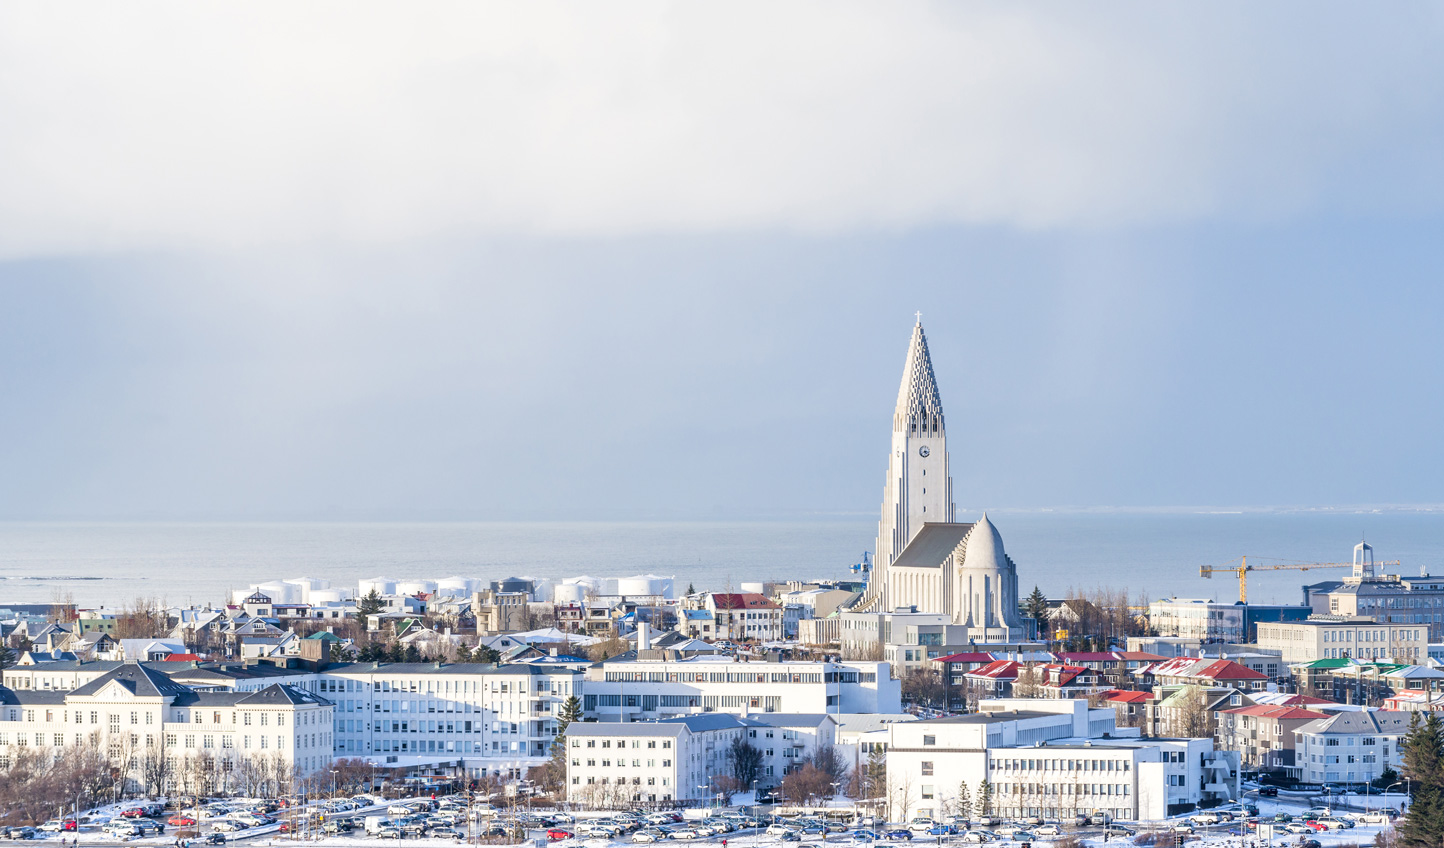 Kicktstart your stay on the chic streets of Reykavik